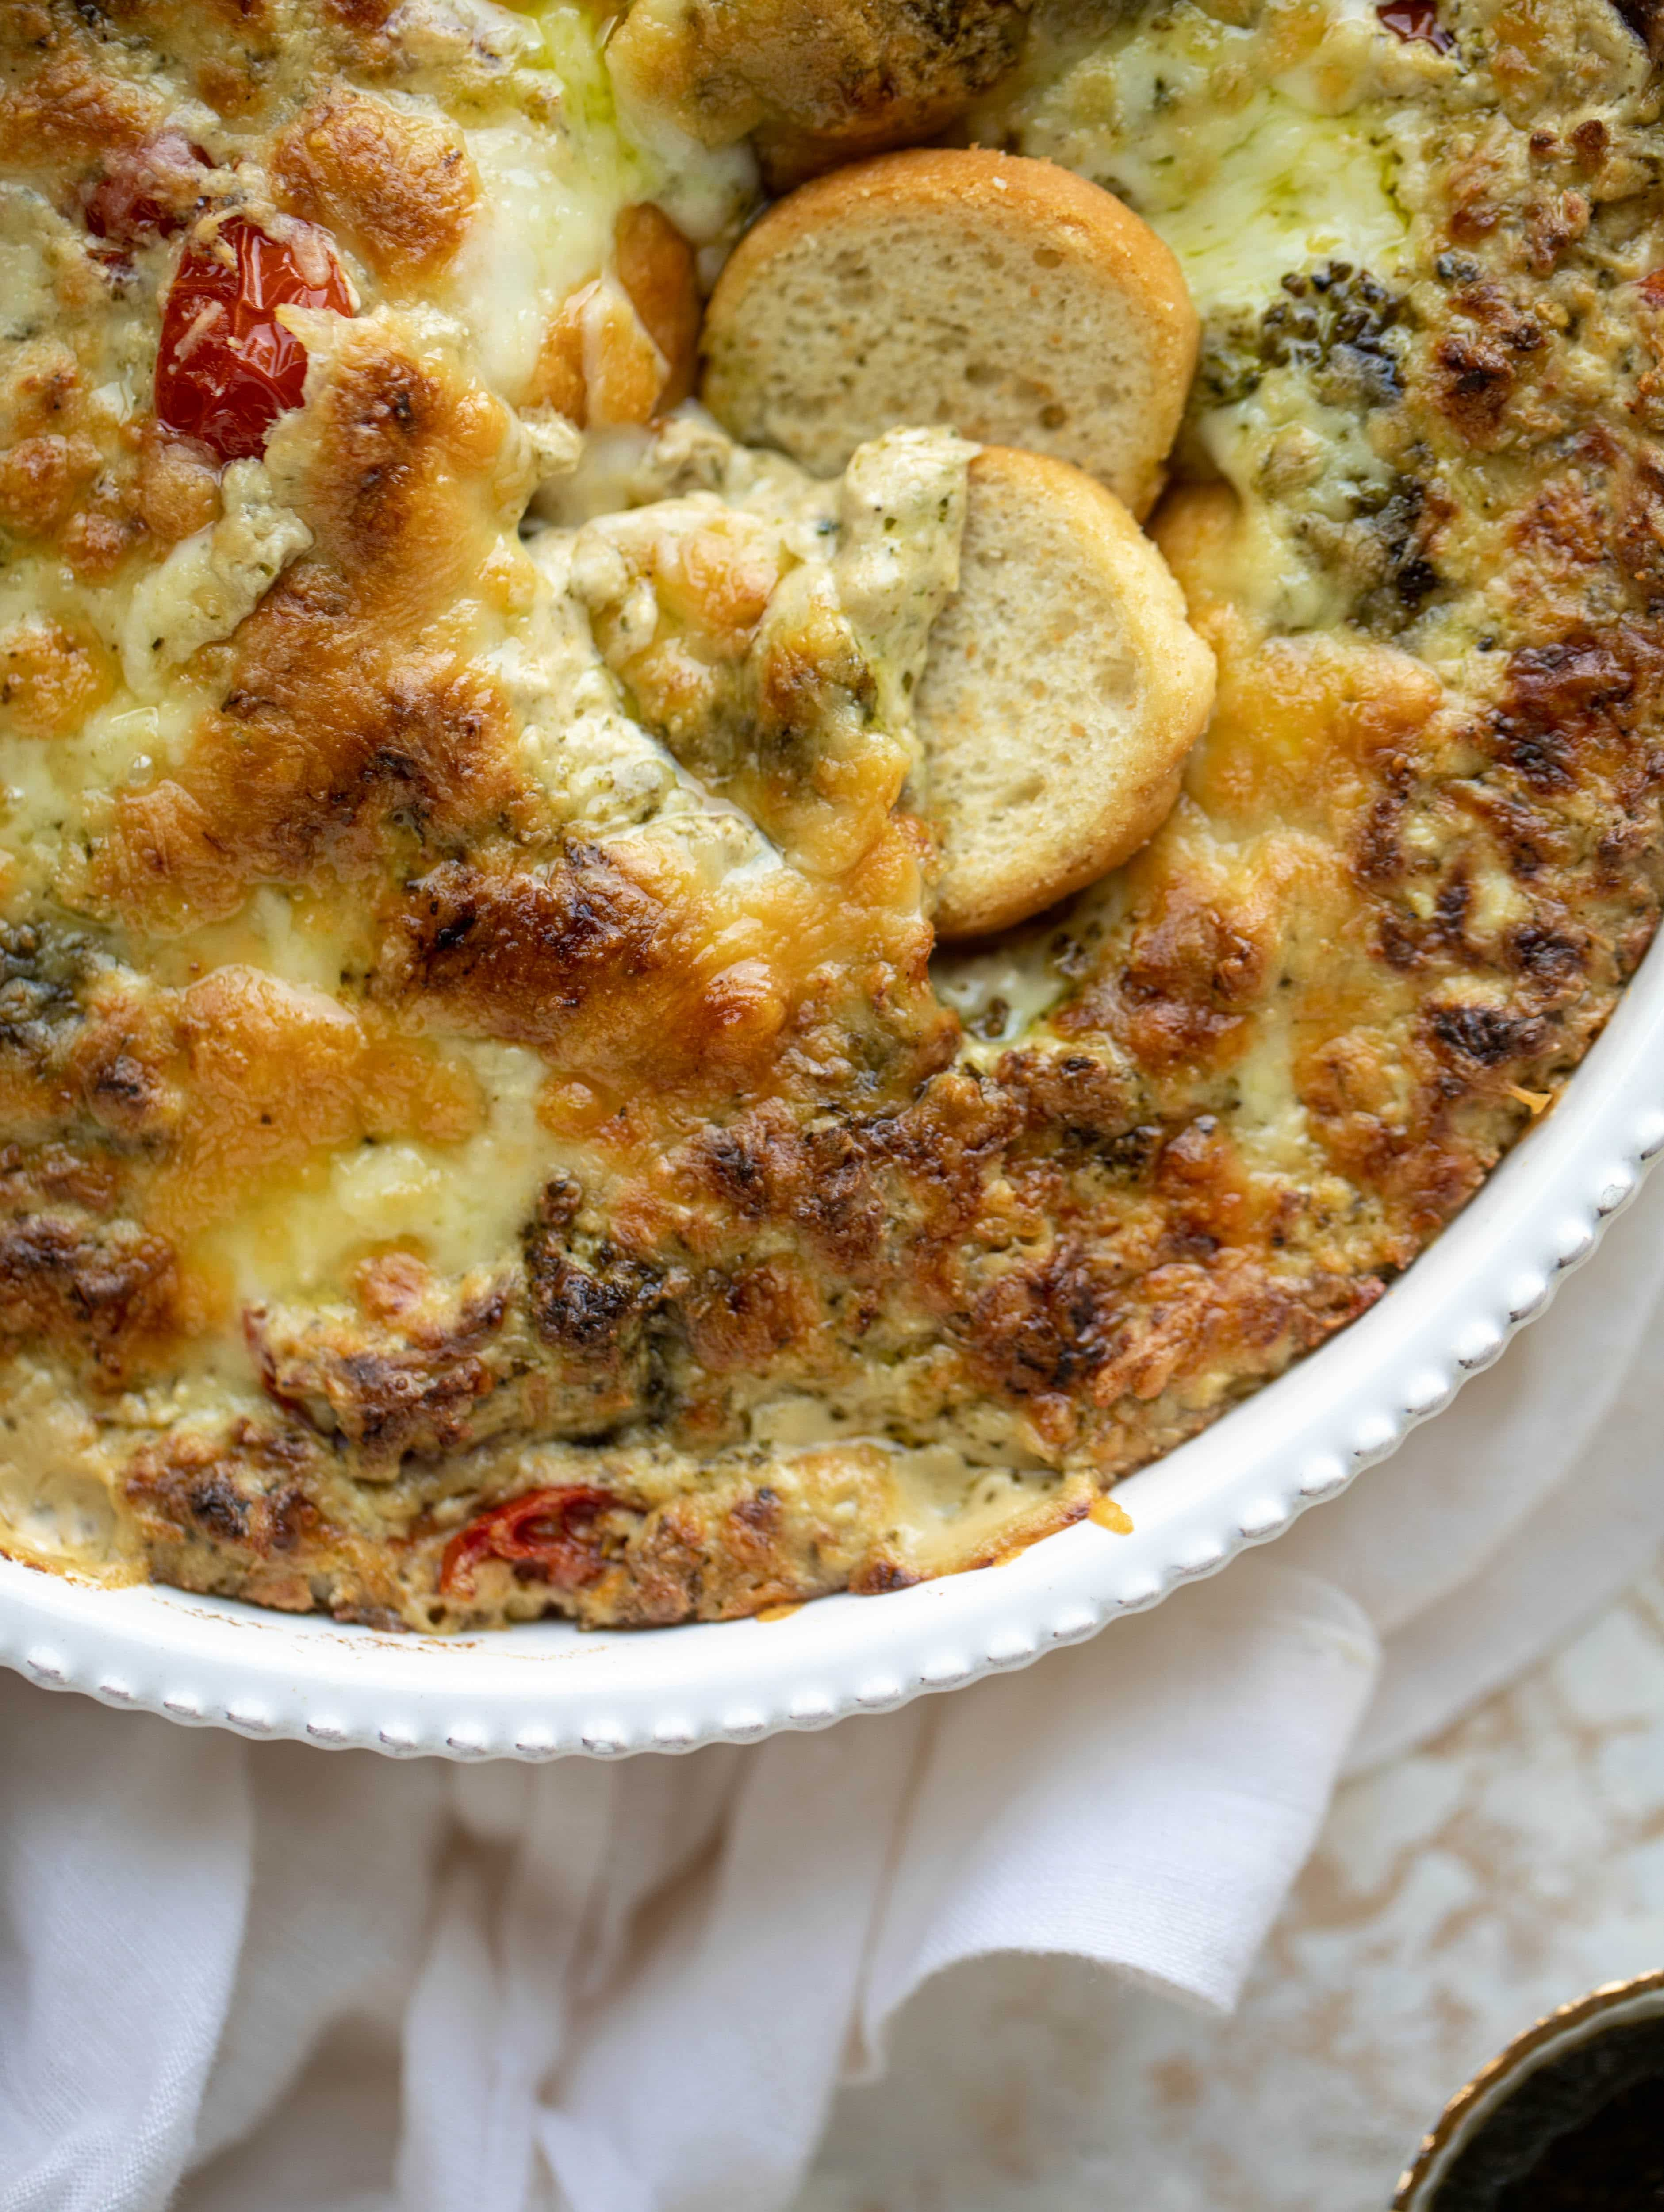 This cheesy pesto chicken dip is a great way to use up your end-of-summer herbs! Lots of delicious smoky flavor and tons of bubbly cheese.